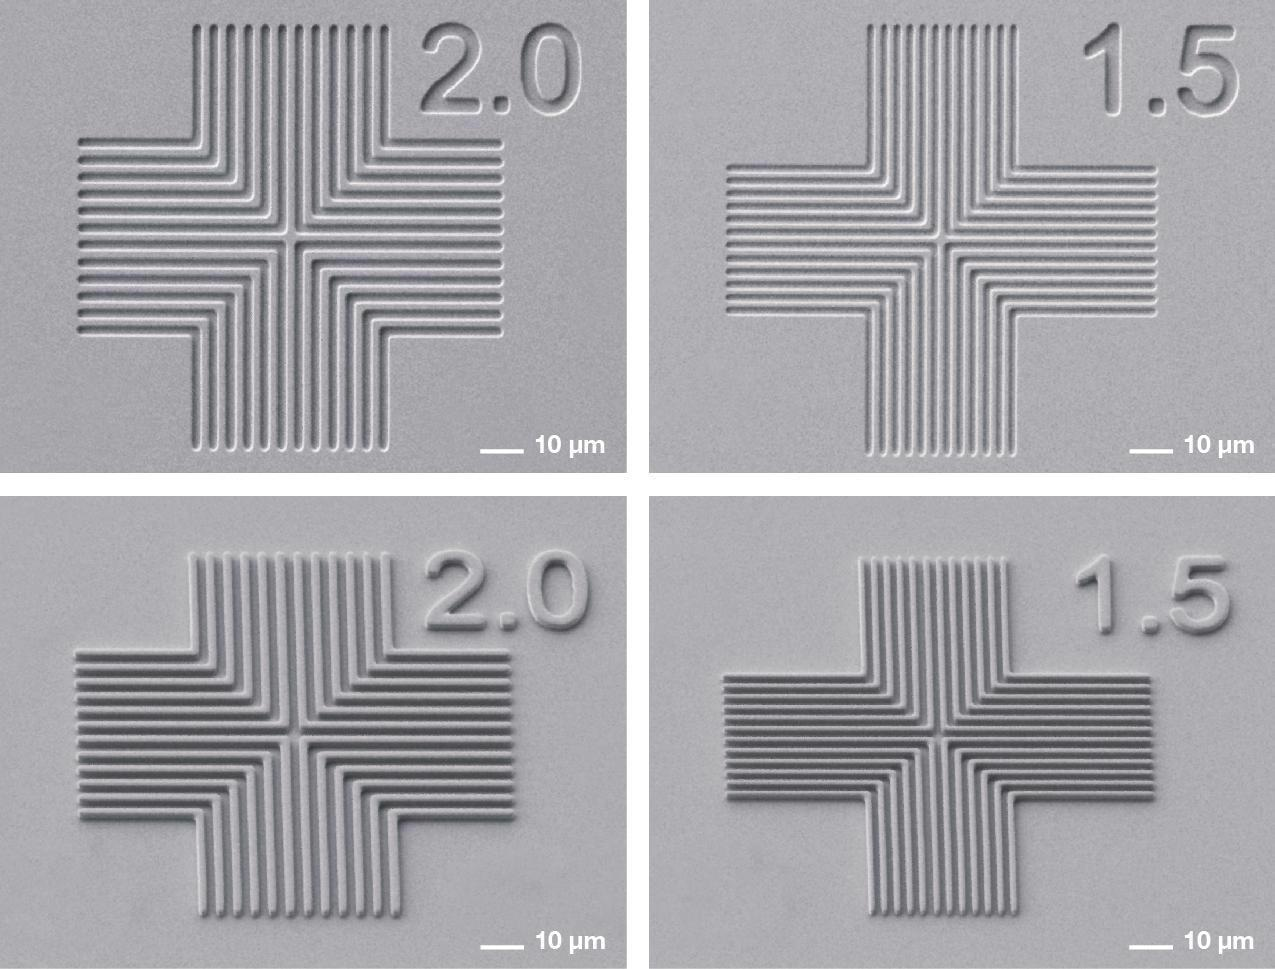 SEM results collage: Line space resolution tests on 1 µm thick positive AZ MIR 701 (top), Line space resolution tests on 2 µm thick negative AZ nLOF (bottom)